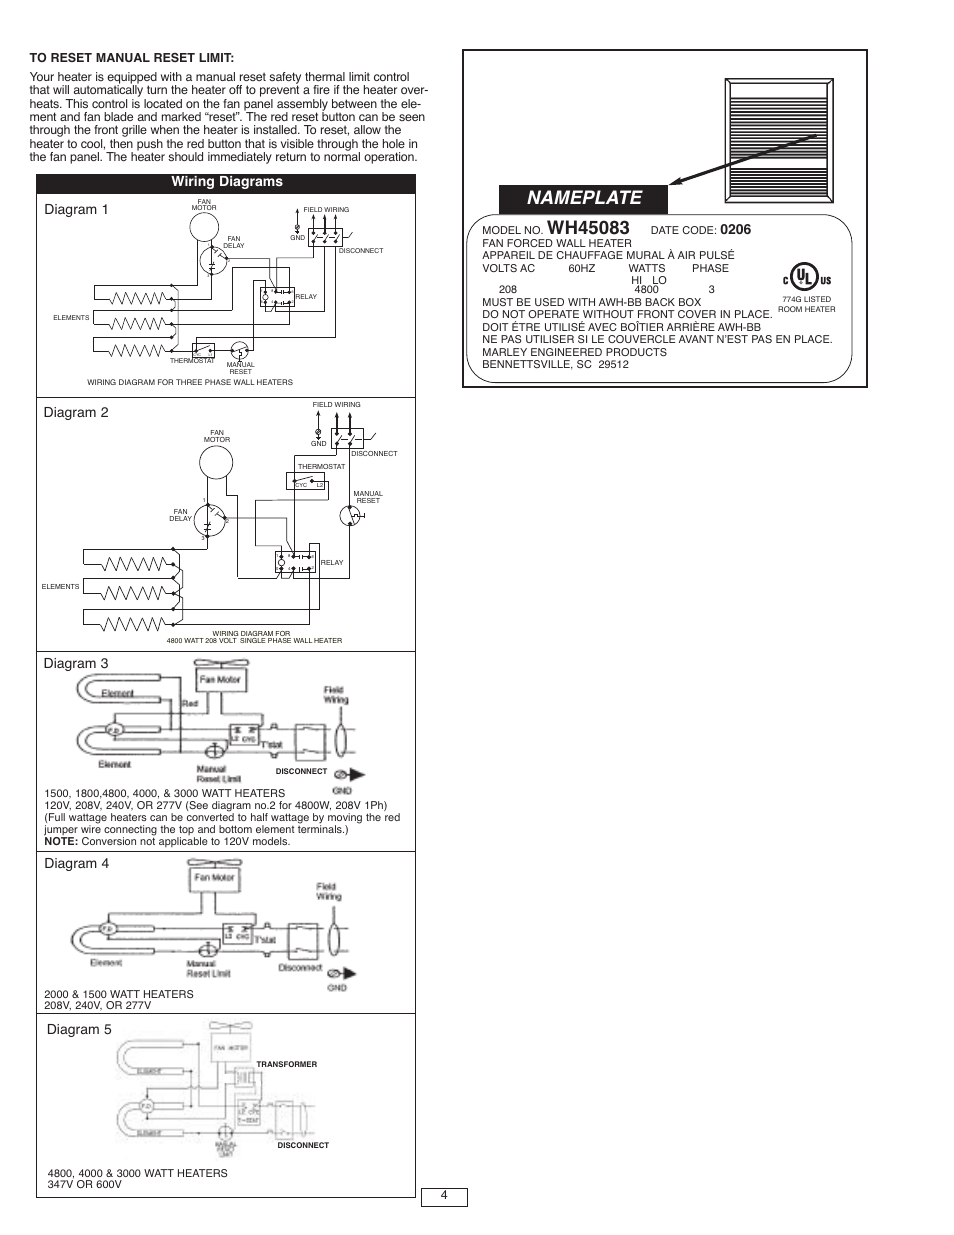 hight resolution of nameplate wiring diagrams qmark awh4000 series architectural heavy duty wall heaters user manual page 4 15